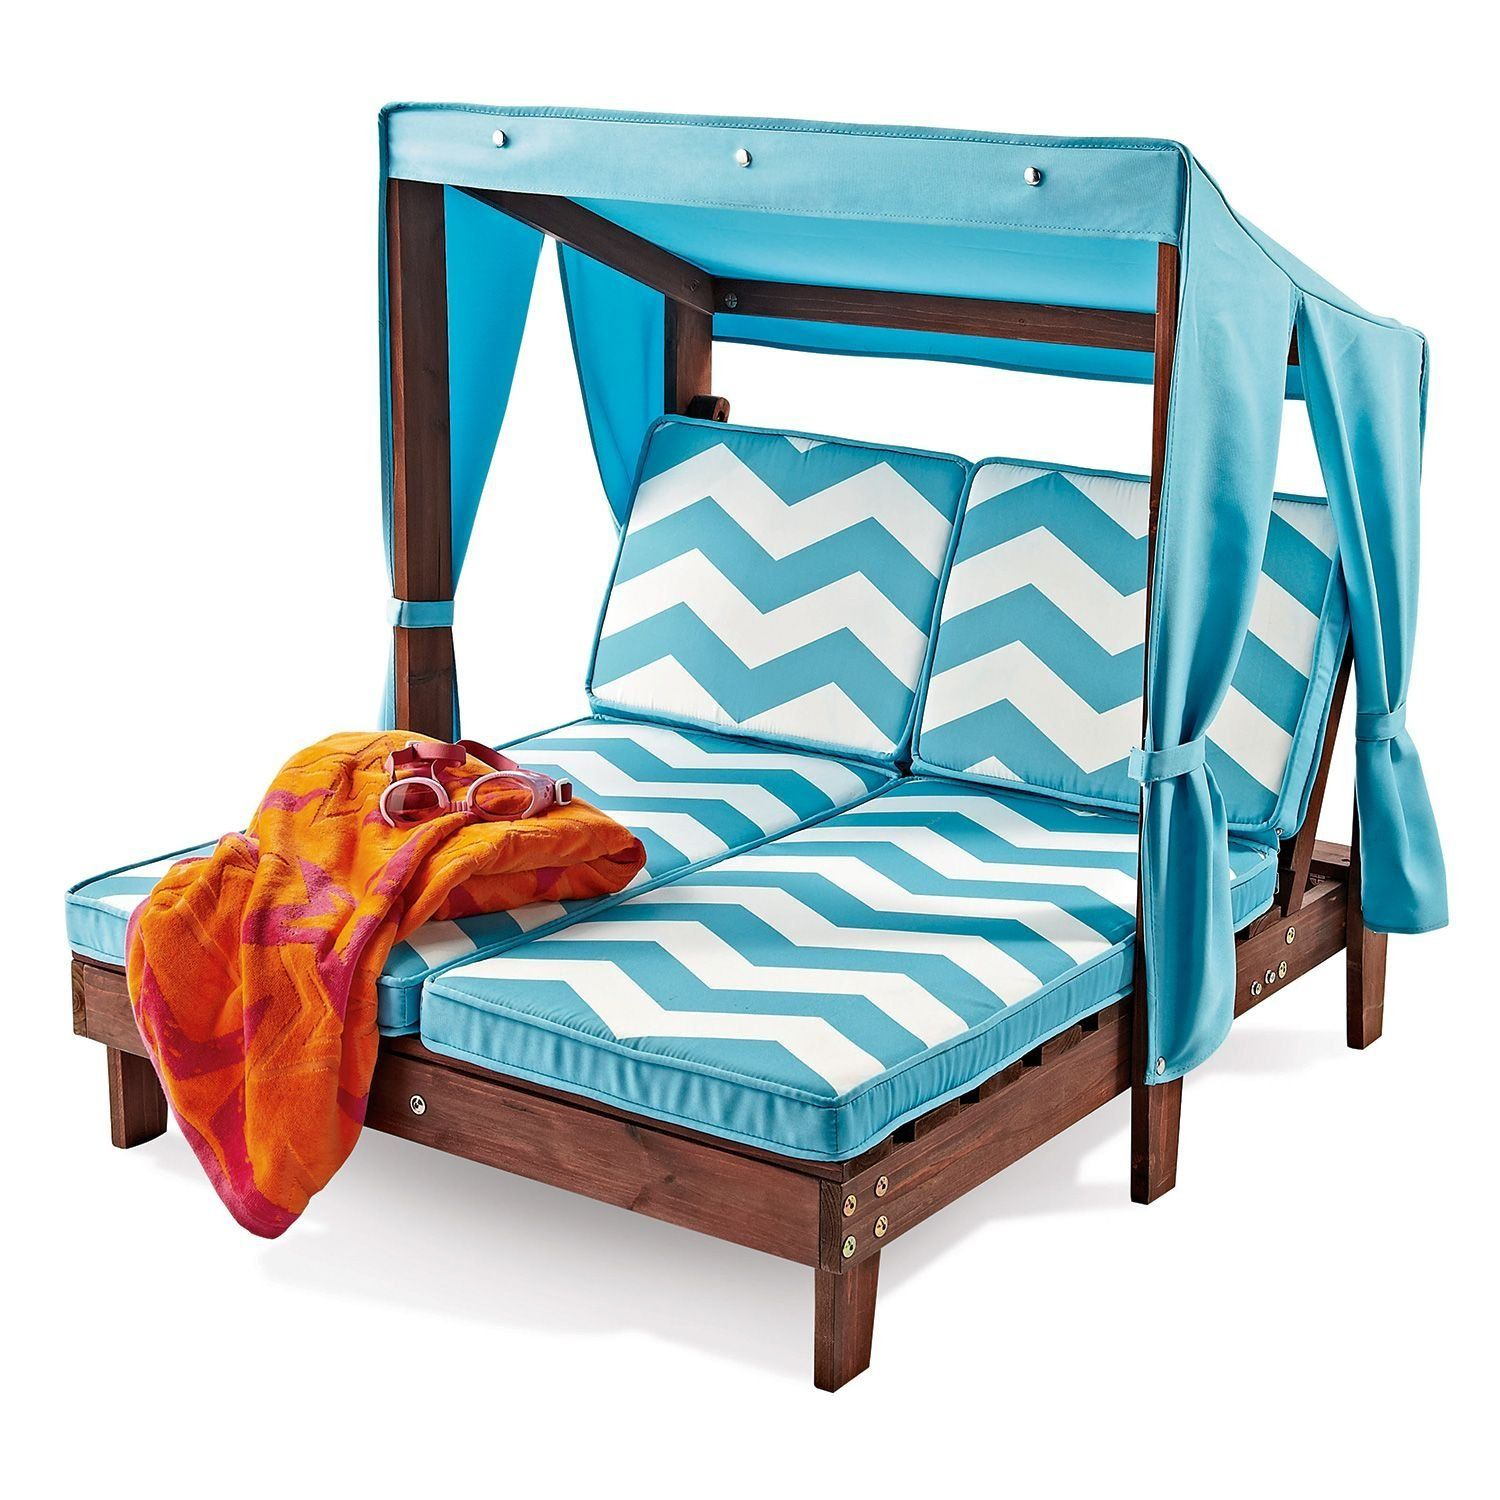 Outdoor Chair With Canopy Sunday Swoon Kids Backyard Lounge Chairs Complicated